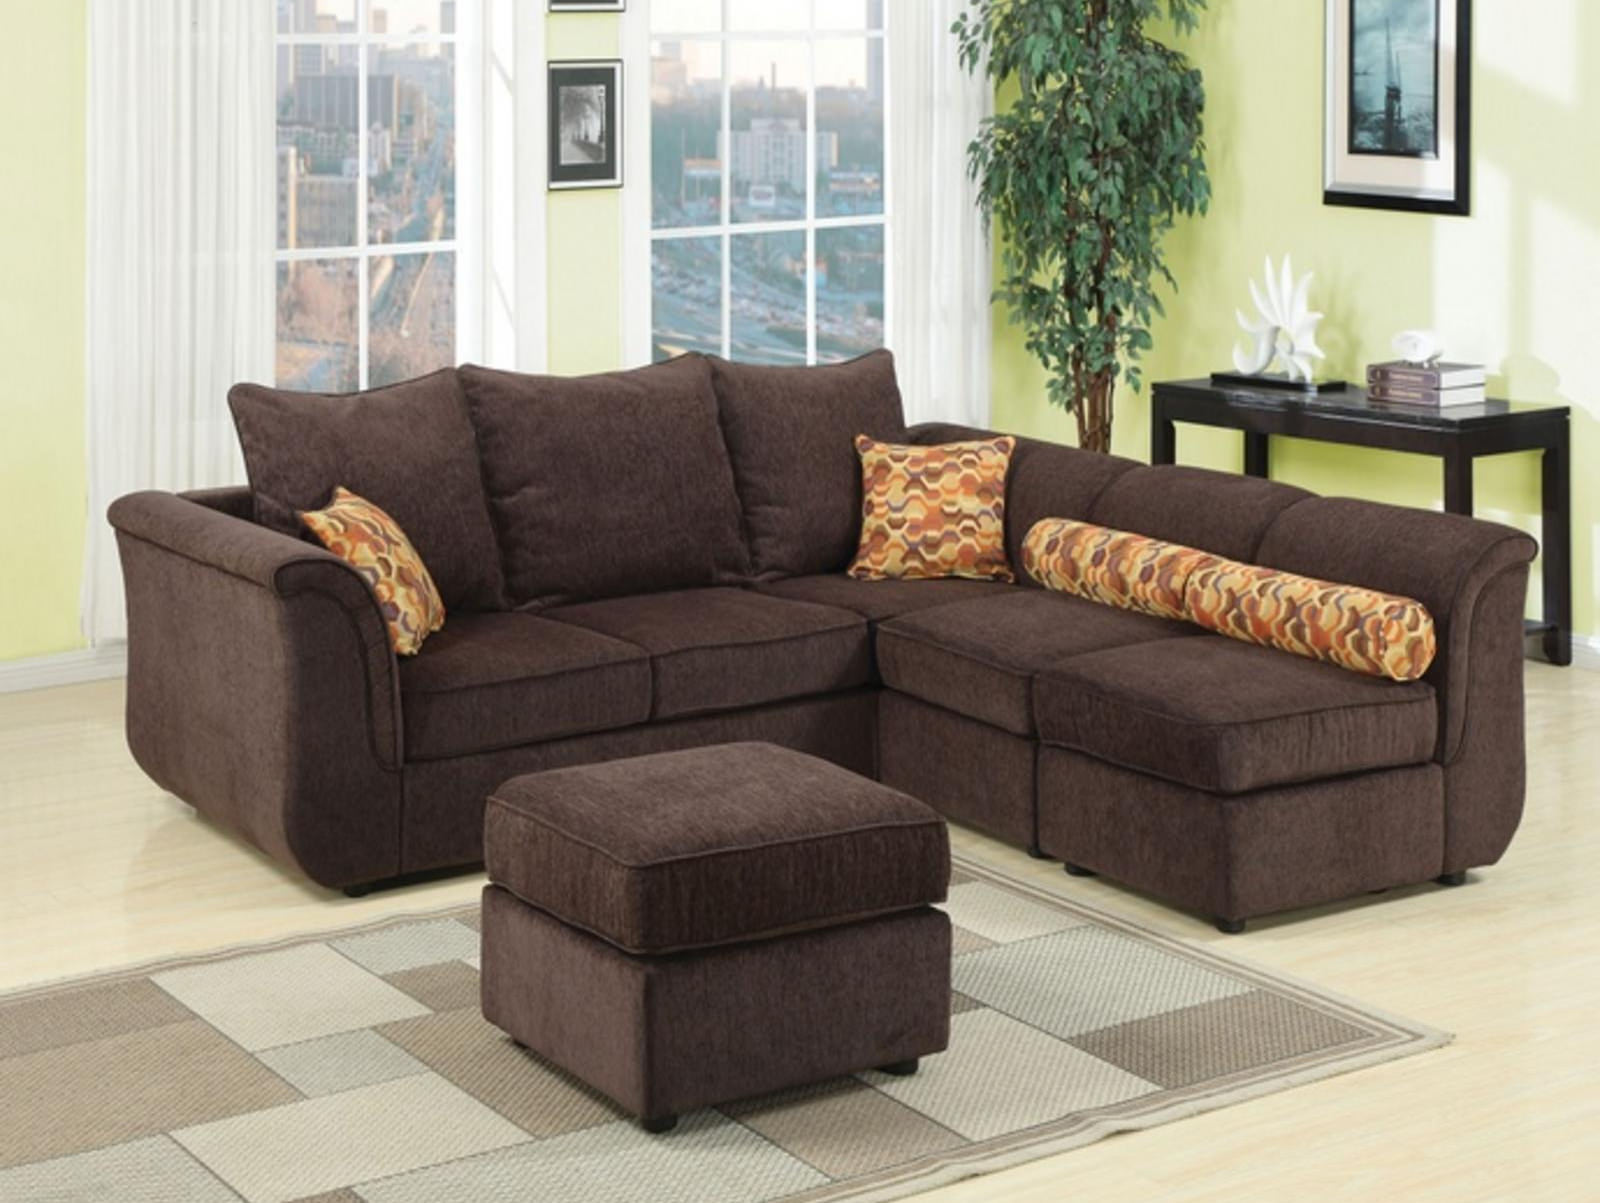 20 Modular Sectional Sofas Designs Ideas Plans Model